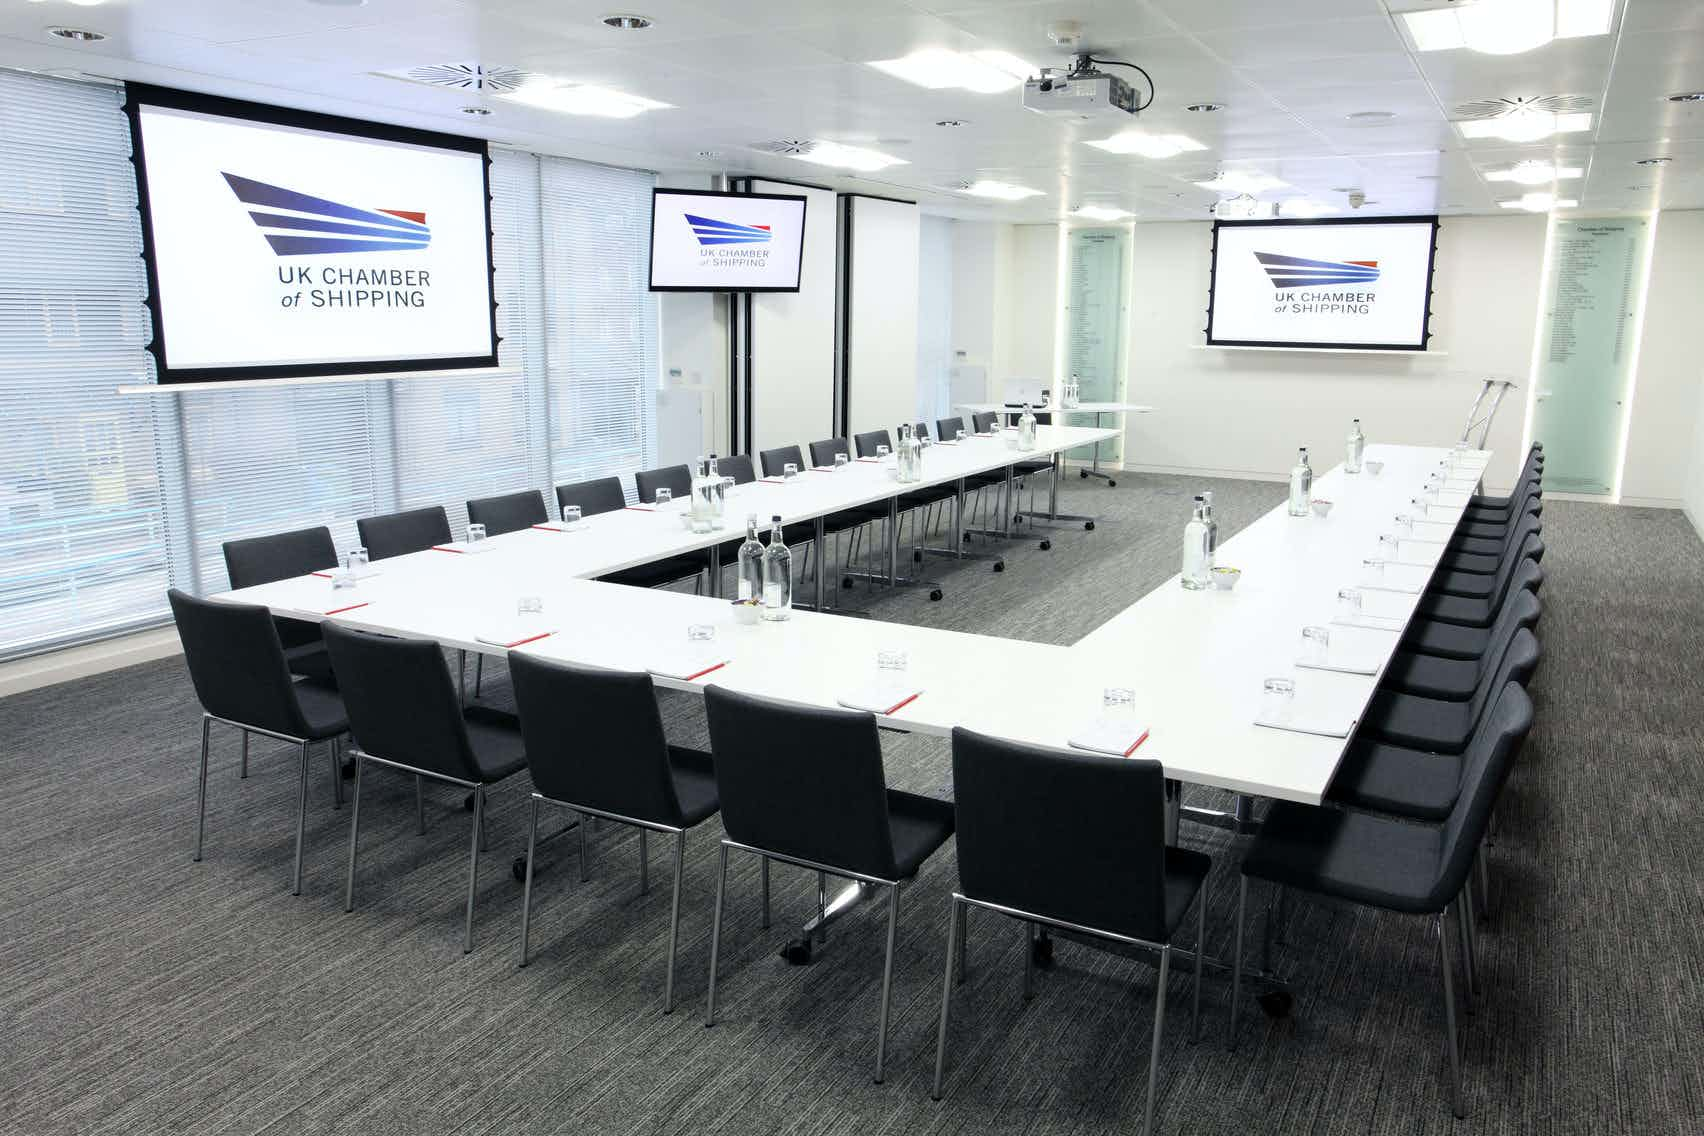 Rooms 2 + 3, UK Chamber of Shipping